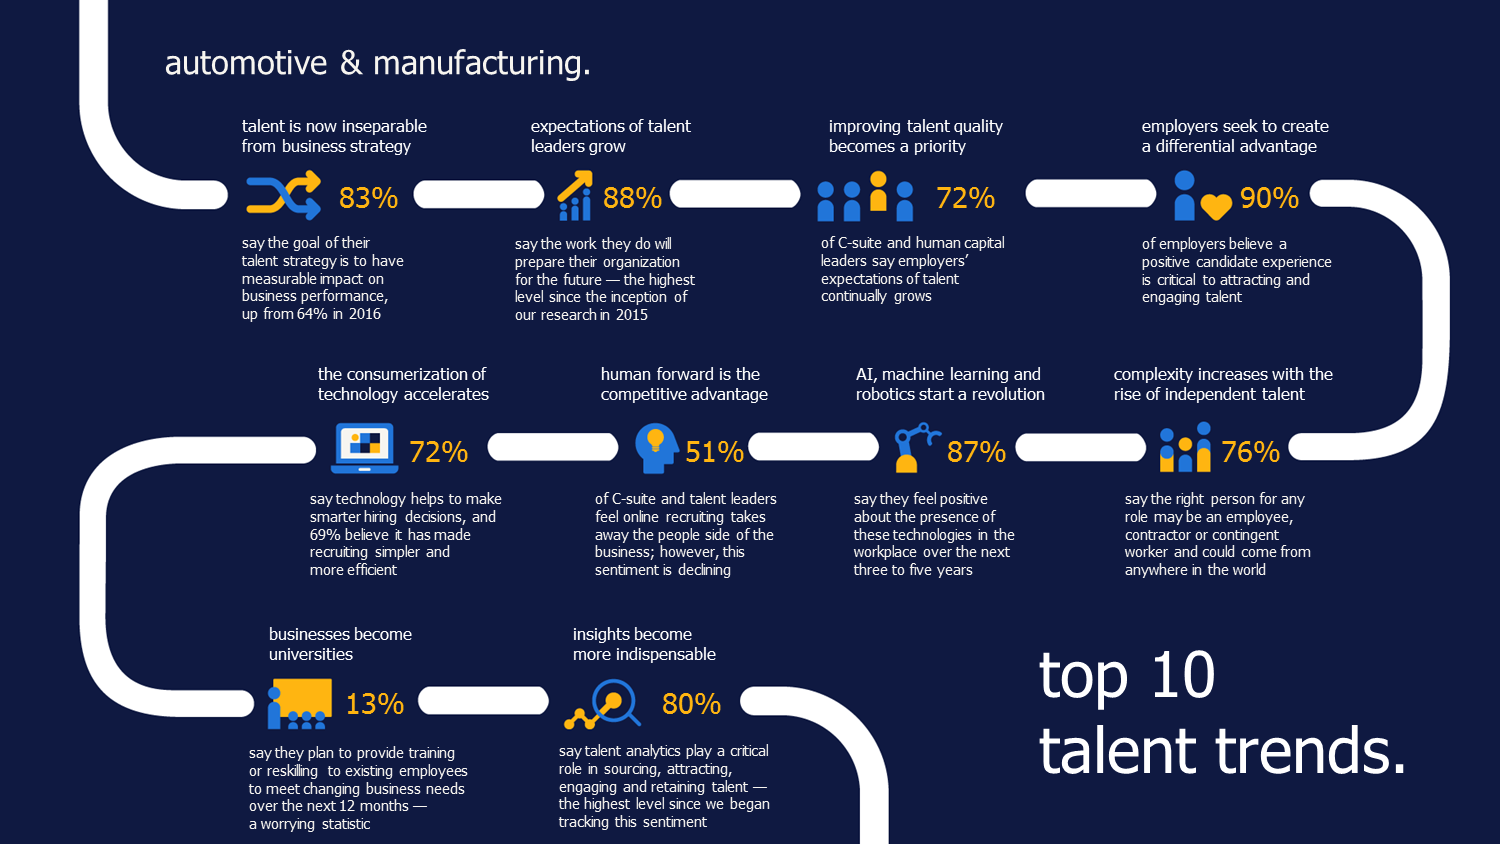 RandstadSourceright_TalentTrends_2018_automotive-manufacturing